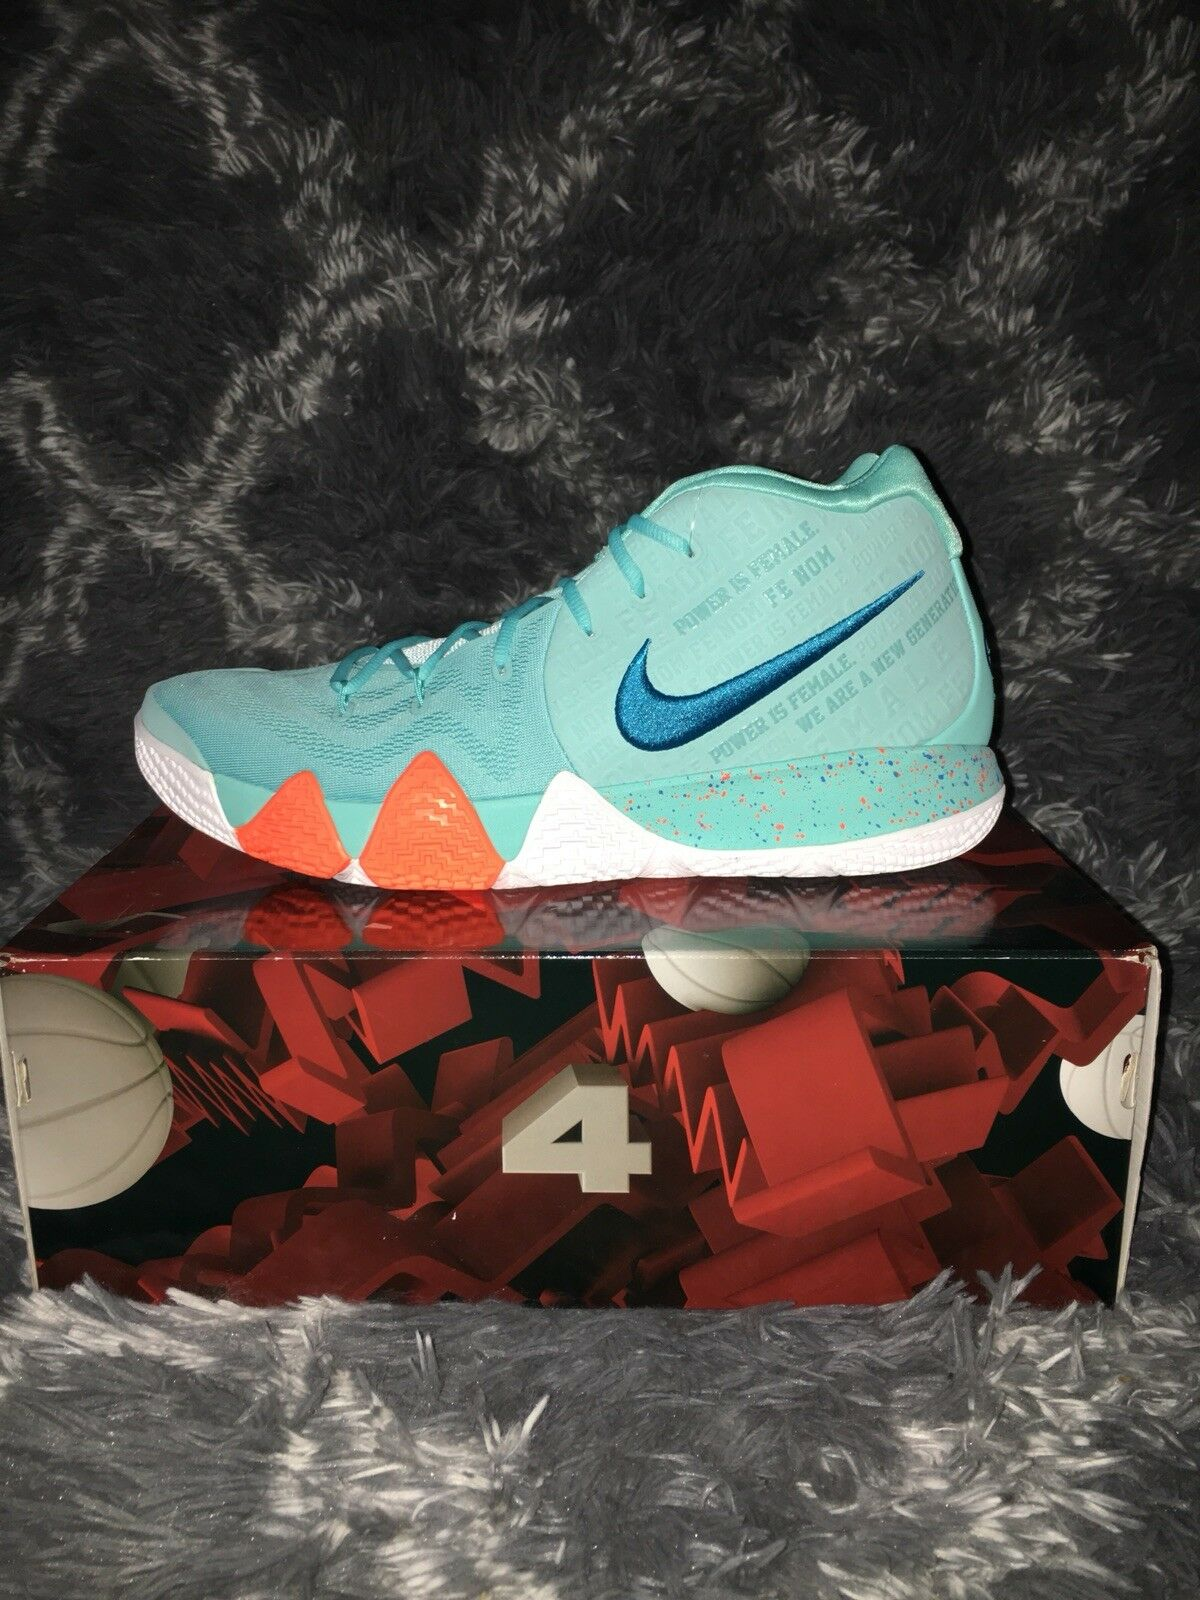 Men's Nike Kyrie 4 Basketball shoes - Size 18